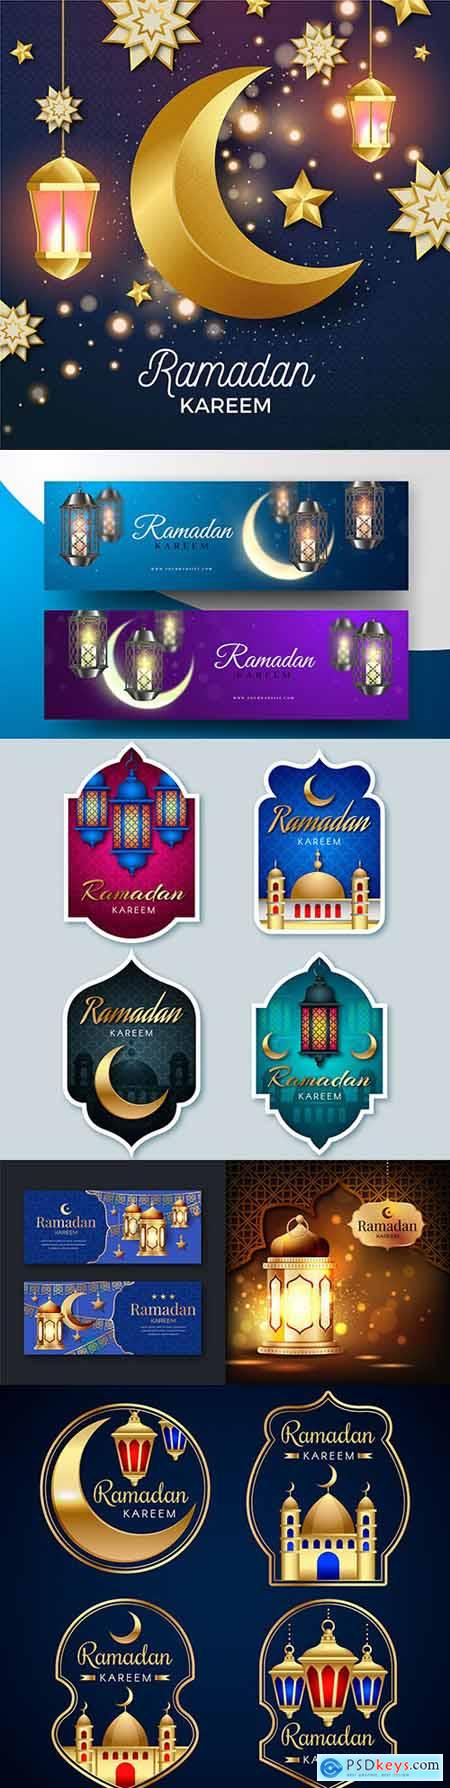 Ramadan Kareem Islamic postcard design illustrations 21